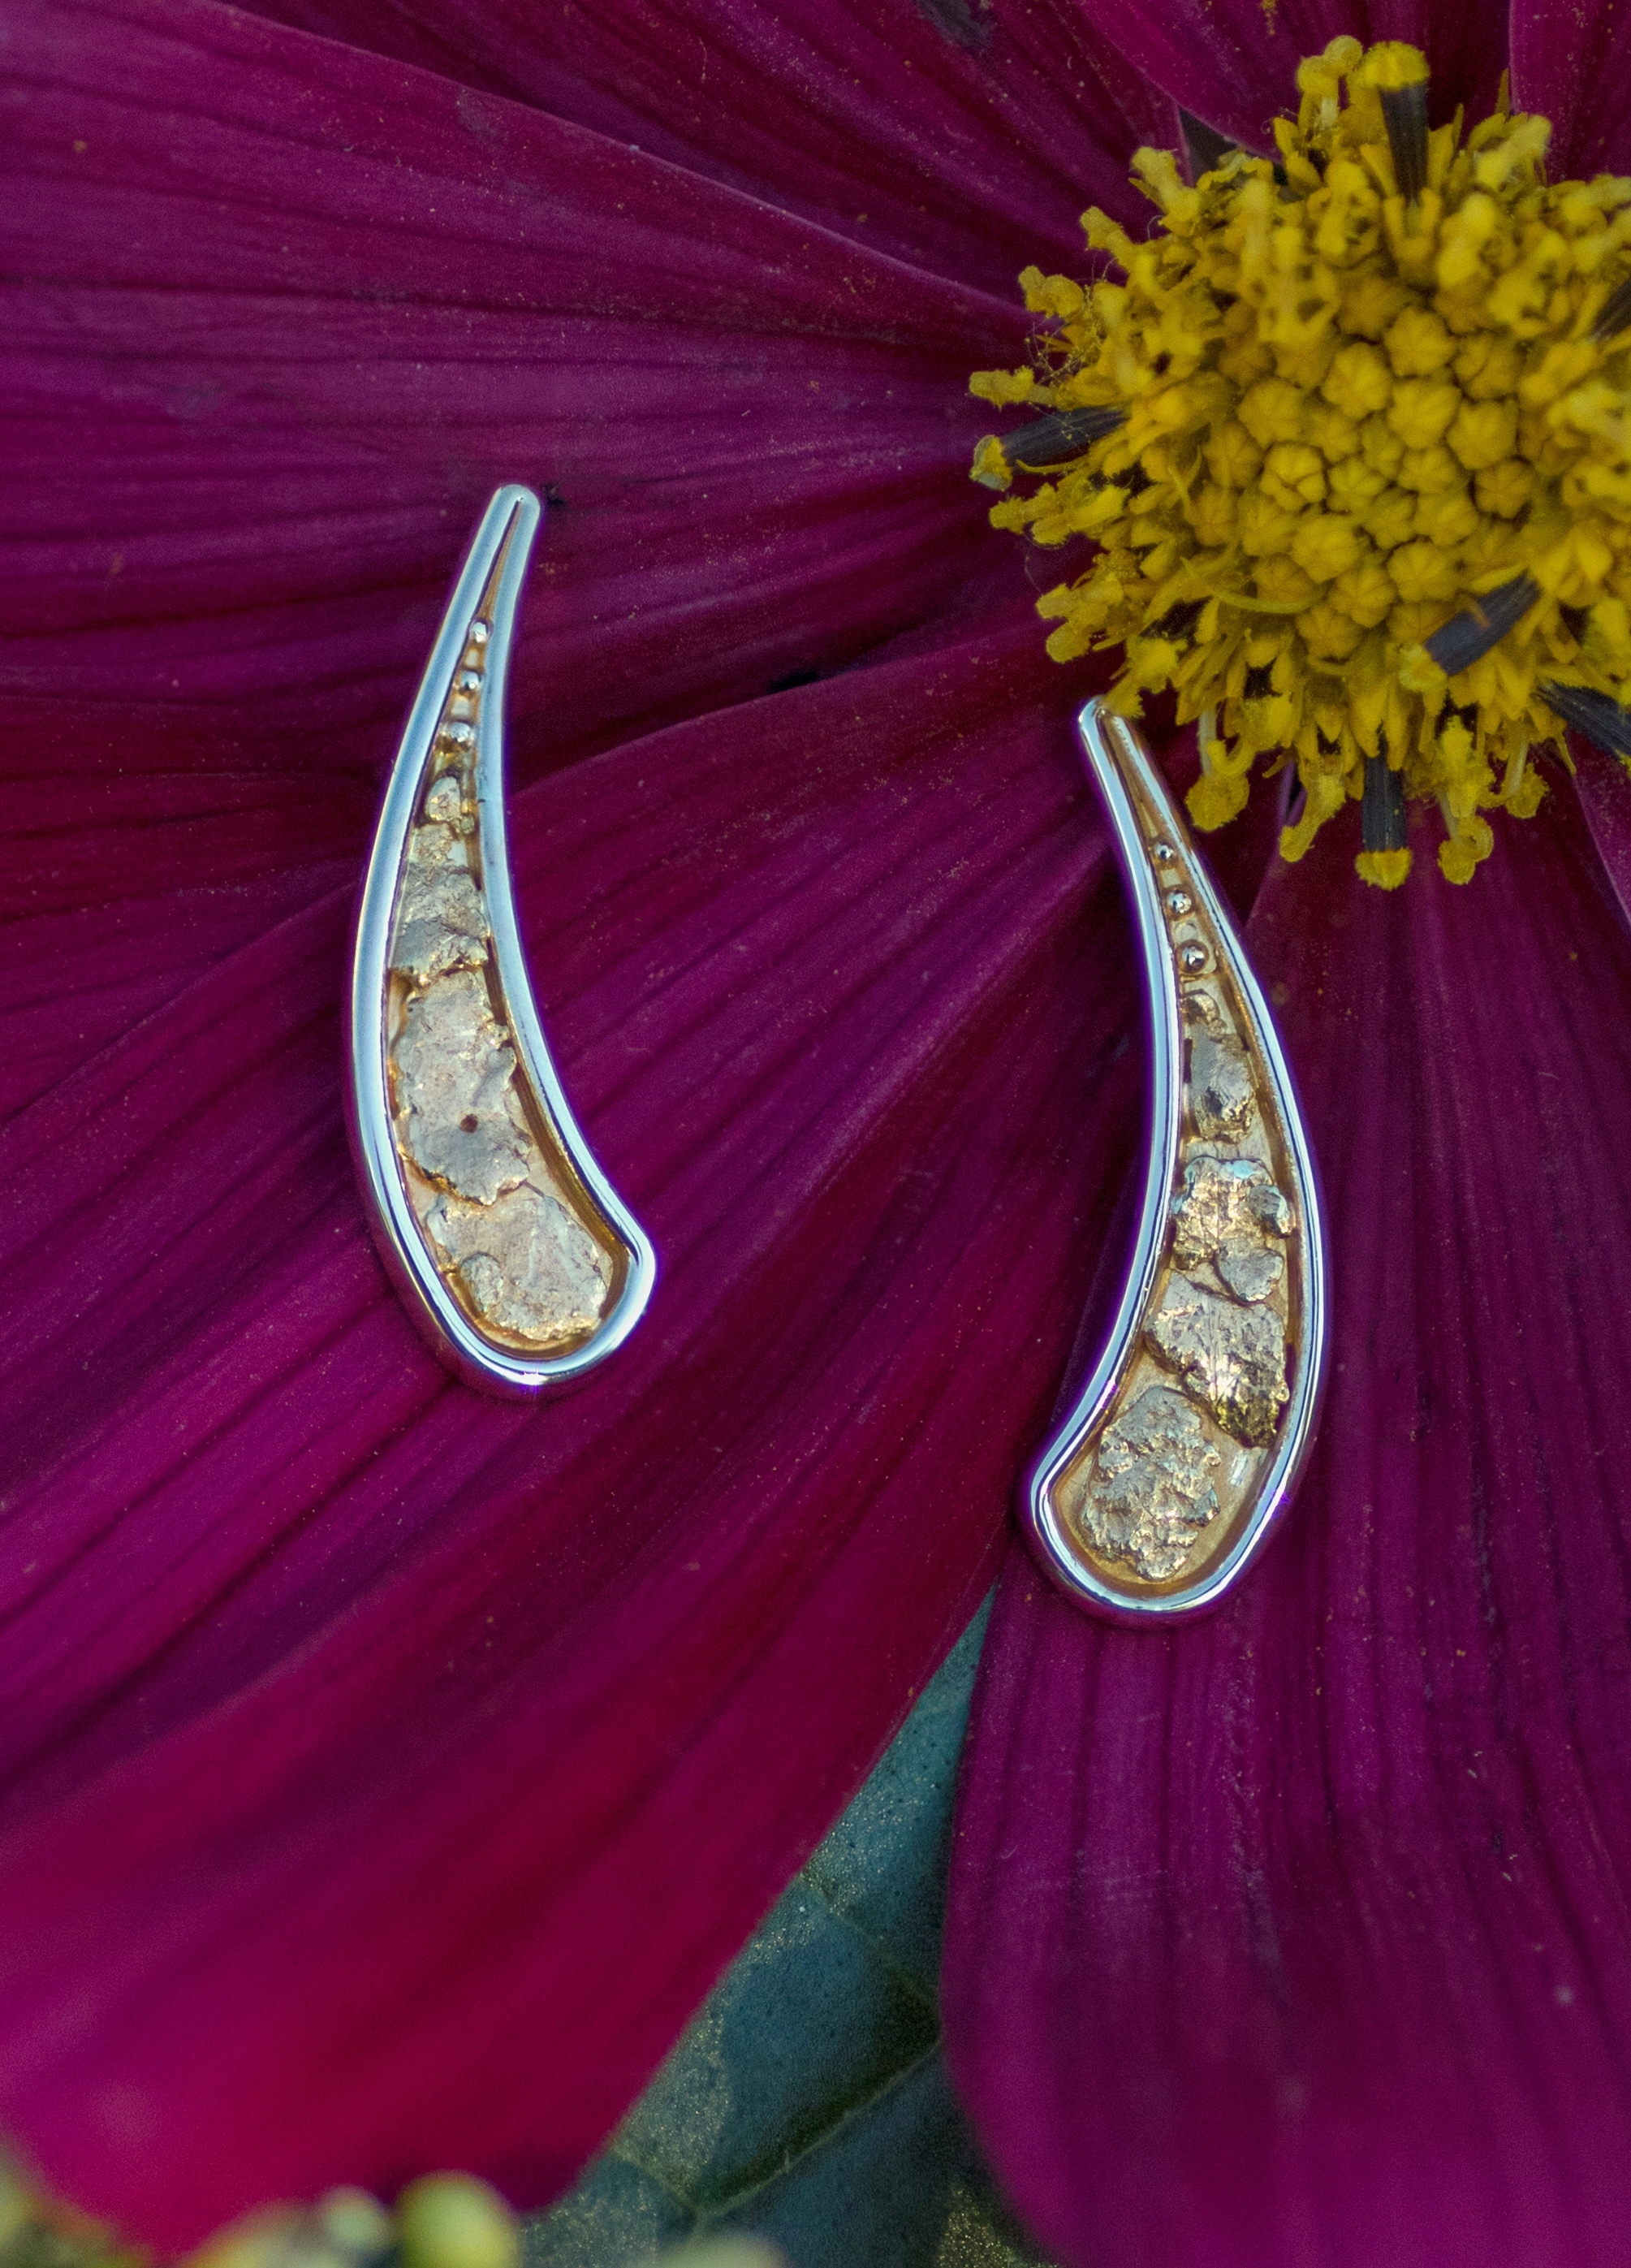 Impressive collection of gorgeous Gold Nuggets poshly arranged in earrings of vibrant 14kt Yellow Gold.